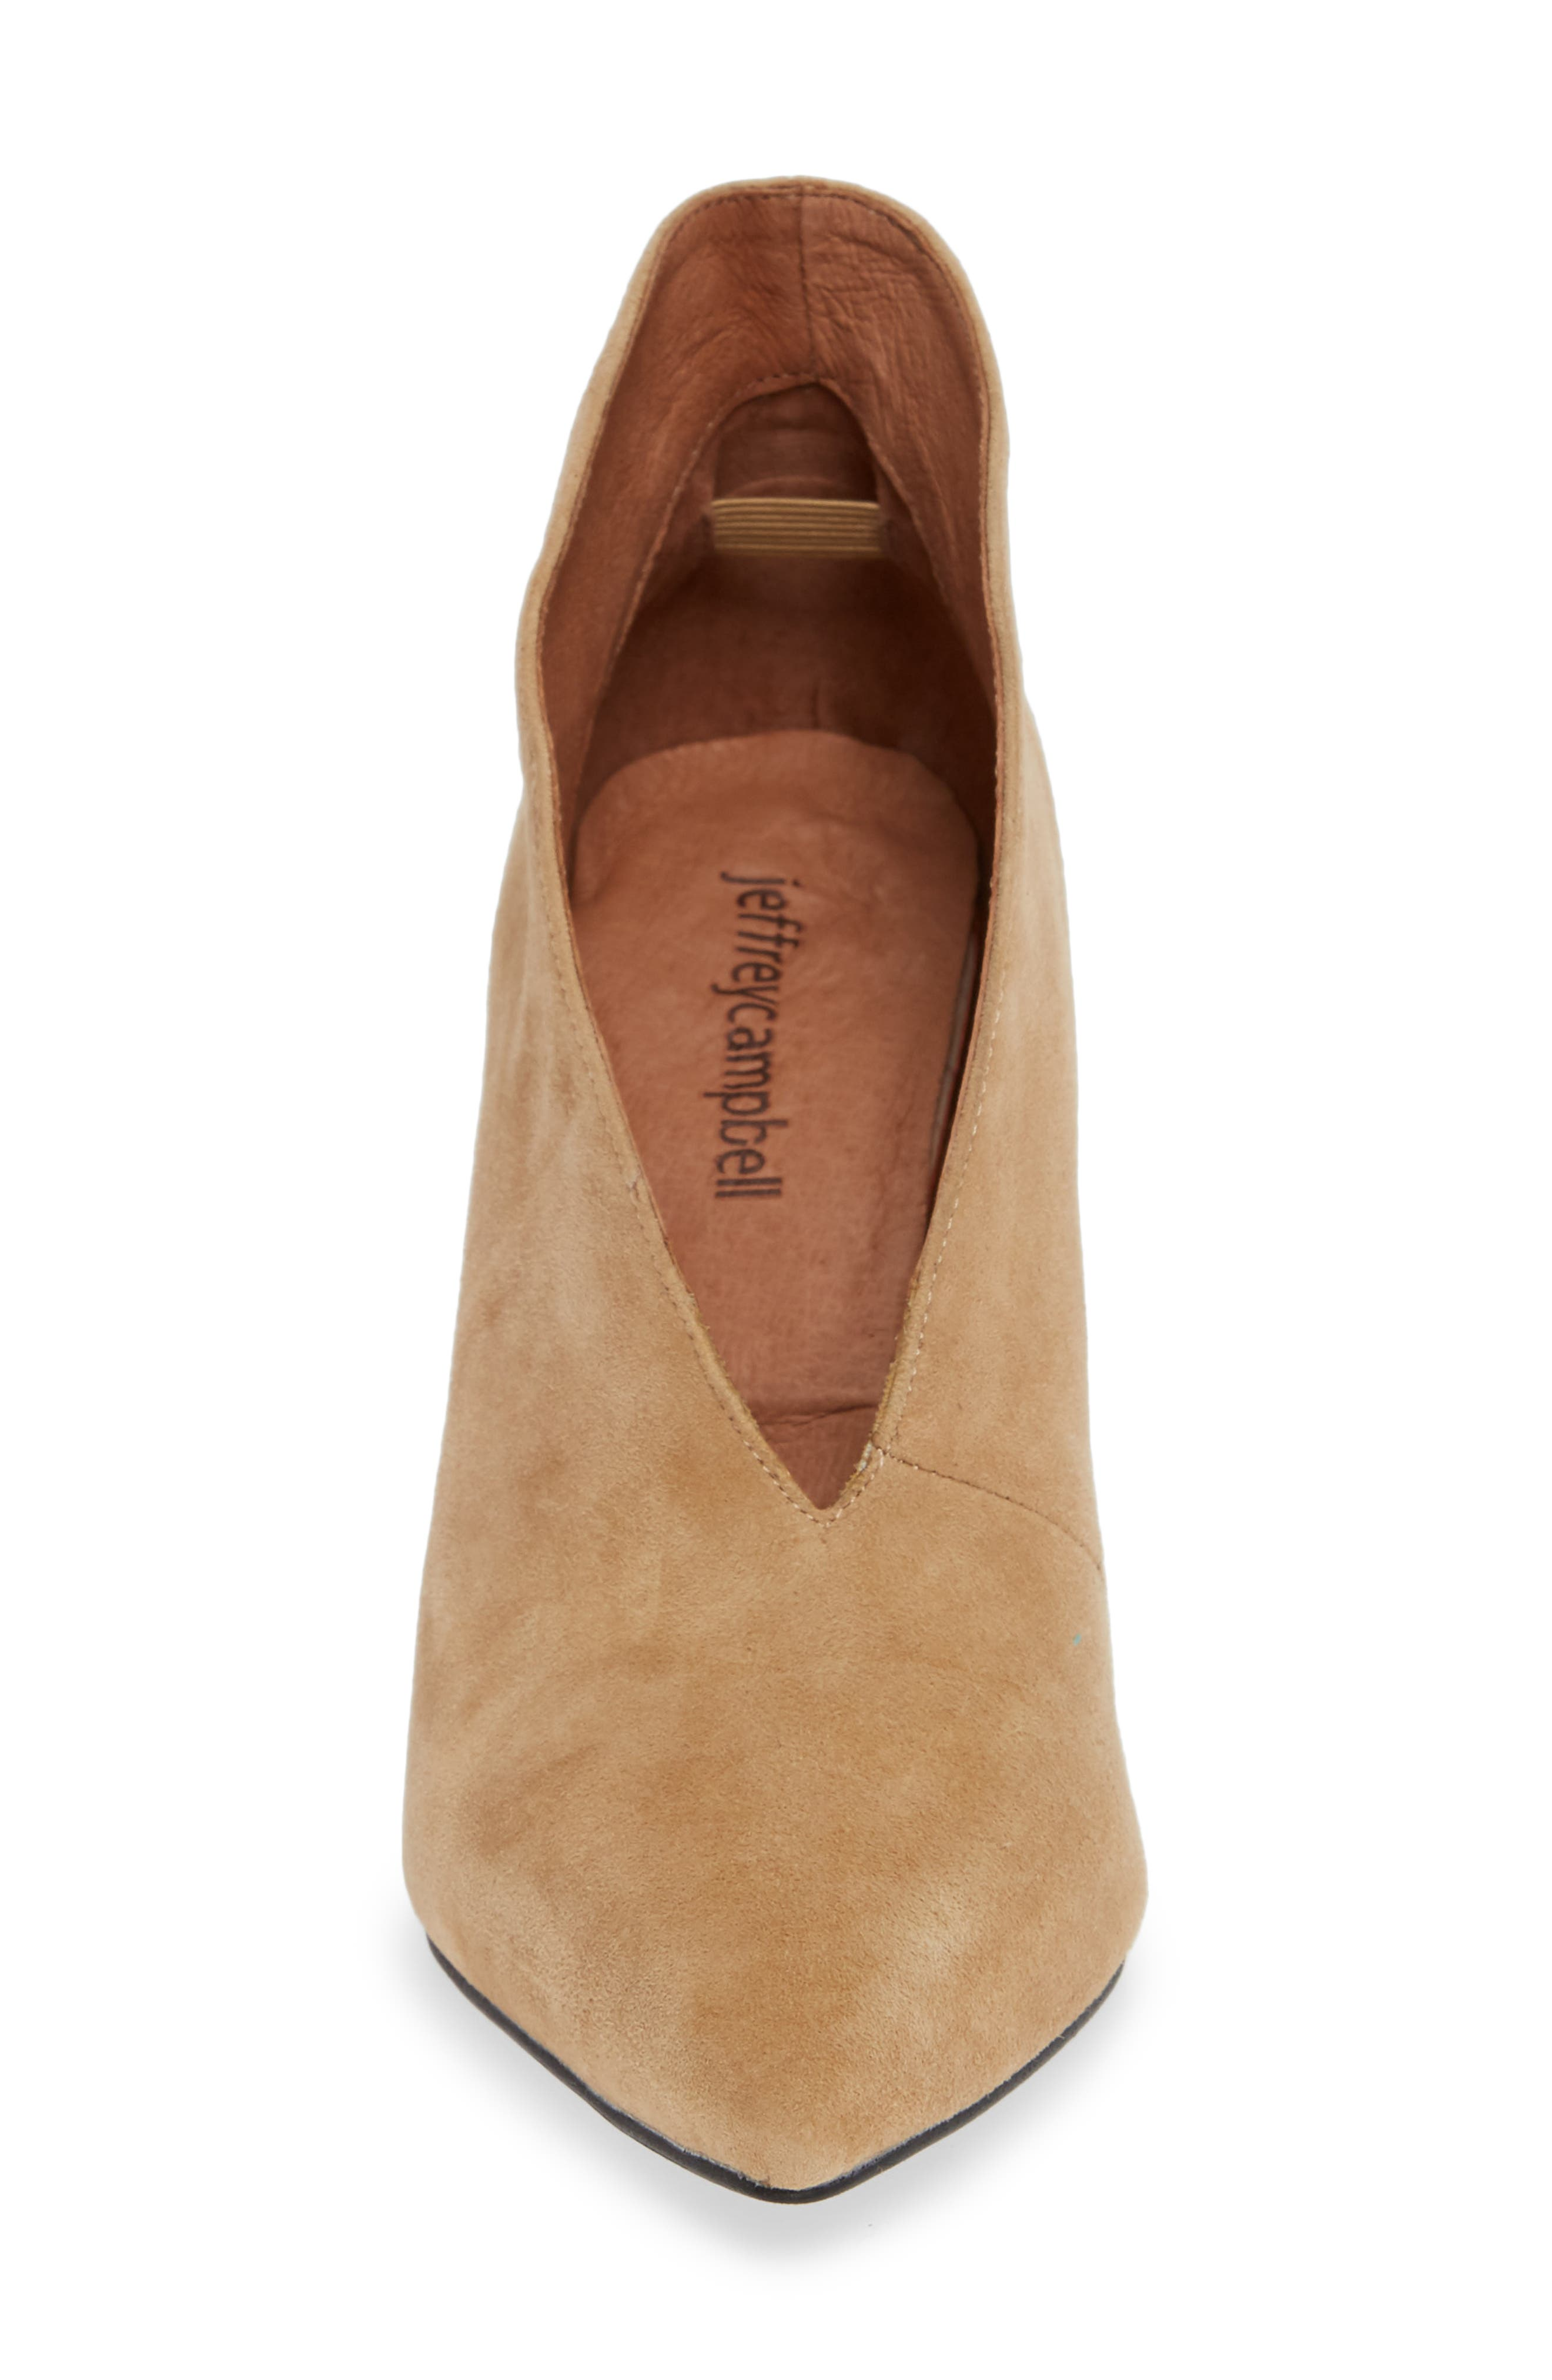 Electron Bootie,                             Alternate thumbnail 4, color,                             NUDE SUEDE